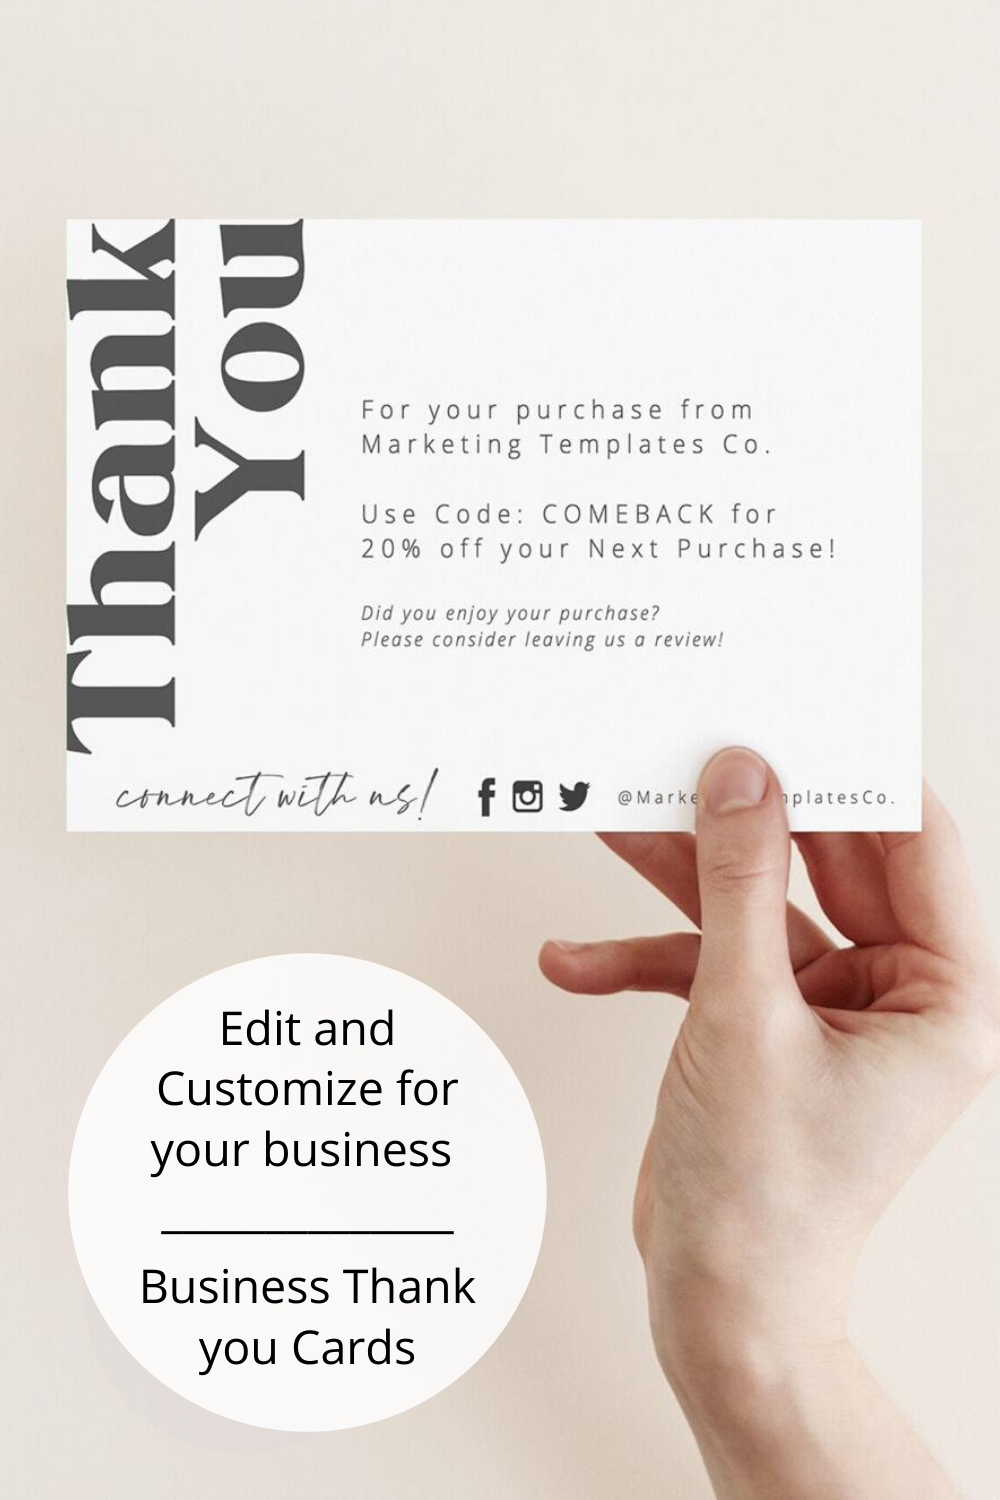 Thank You For Your Order Card Insert Diy Business Thank You Cards Package Insert Cards Etsy Seller Insert Cards Coupon Code Cards Business Thank You Cards Business Thank You Small Business